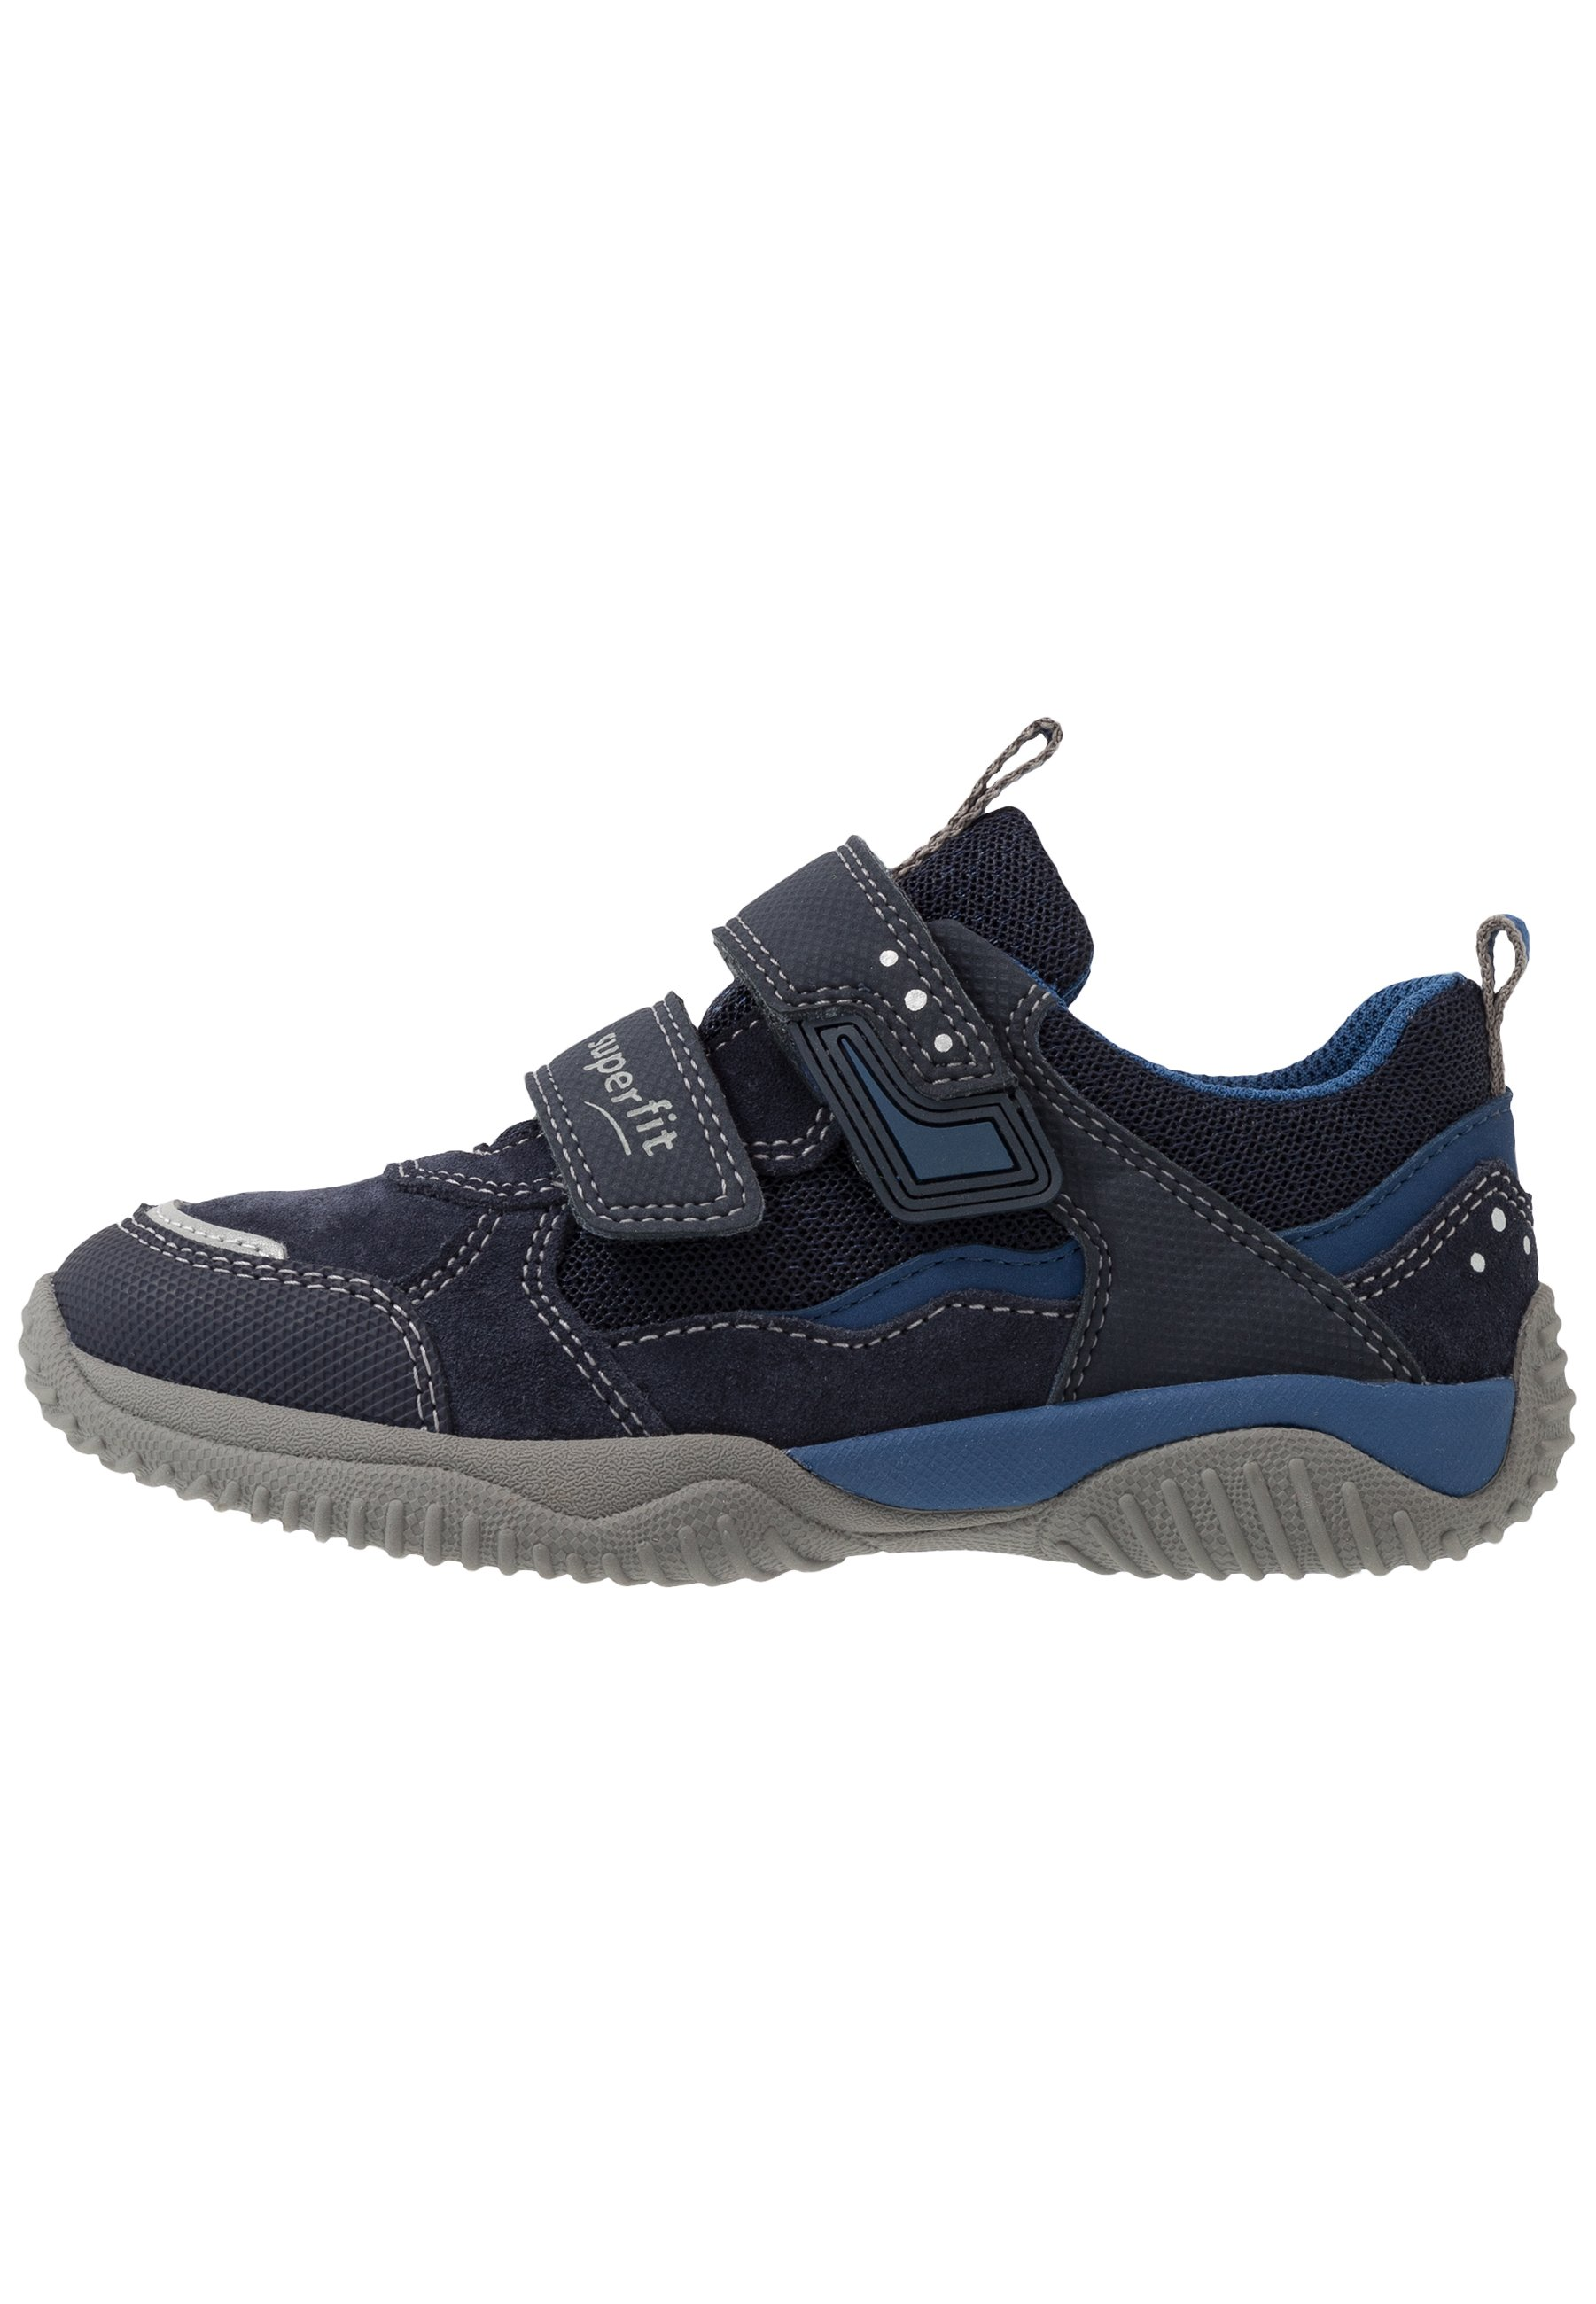 Kids STORM - Touch-strap shoes